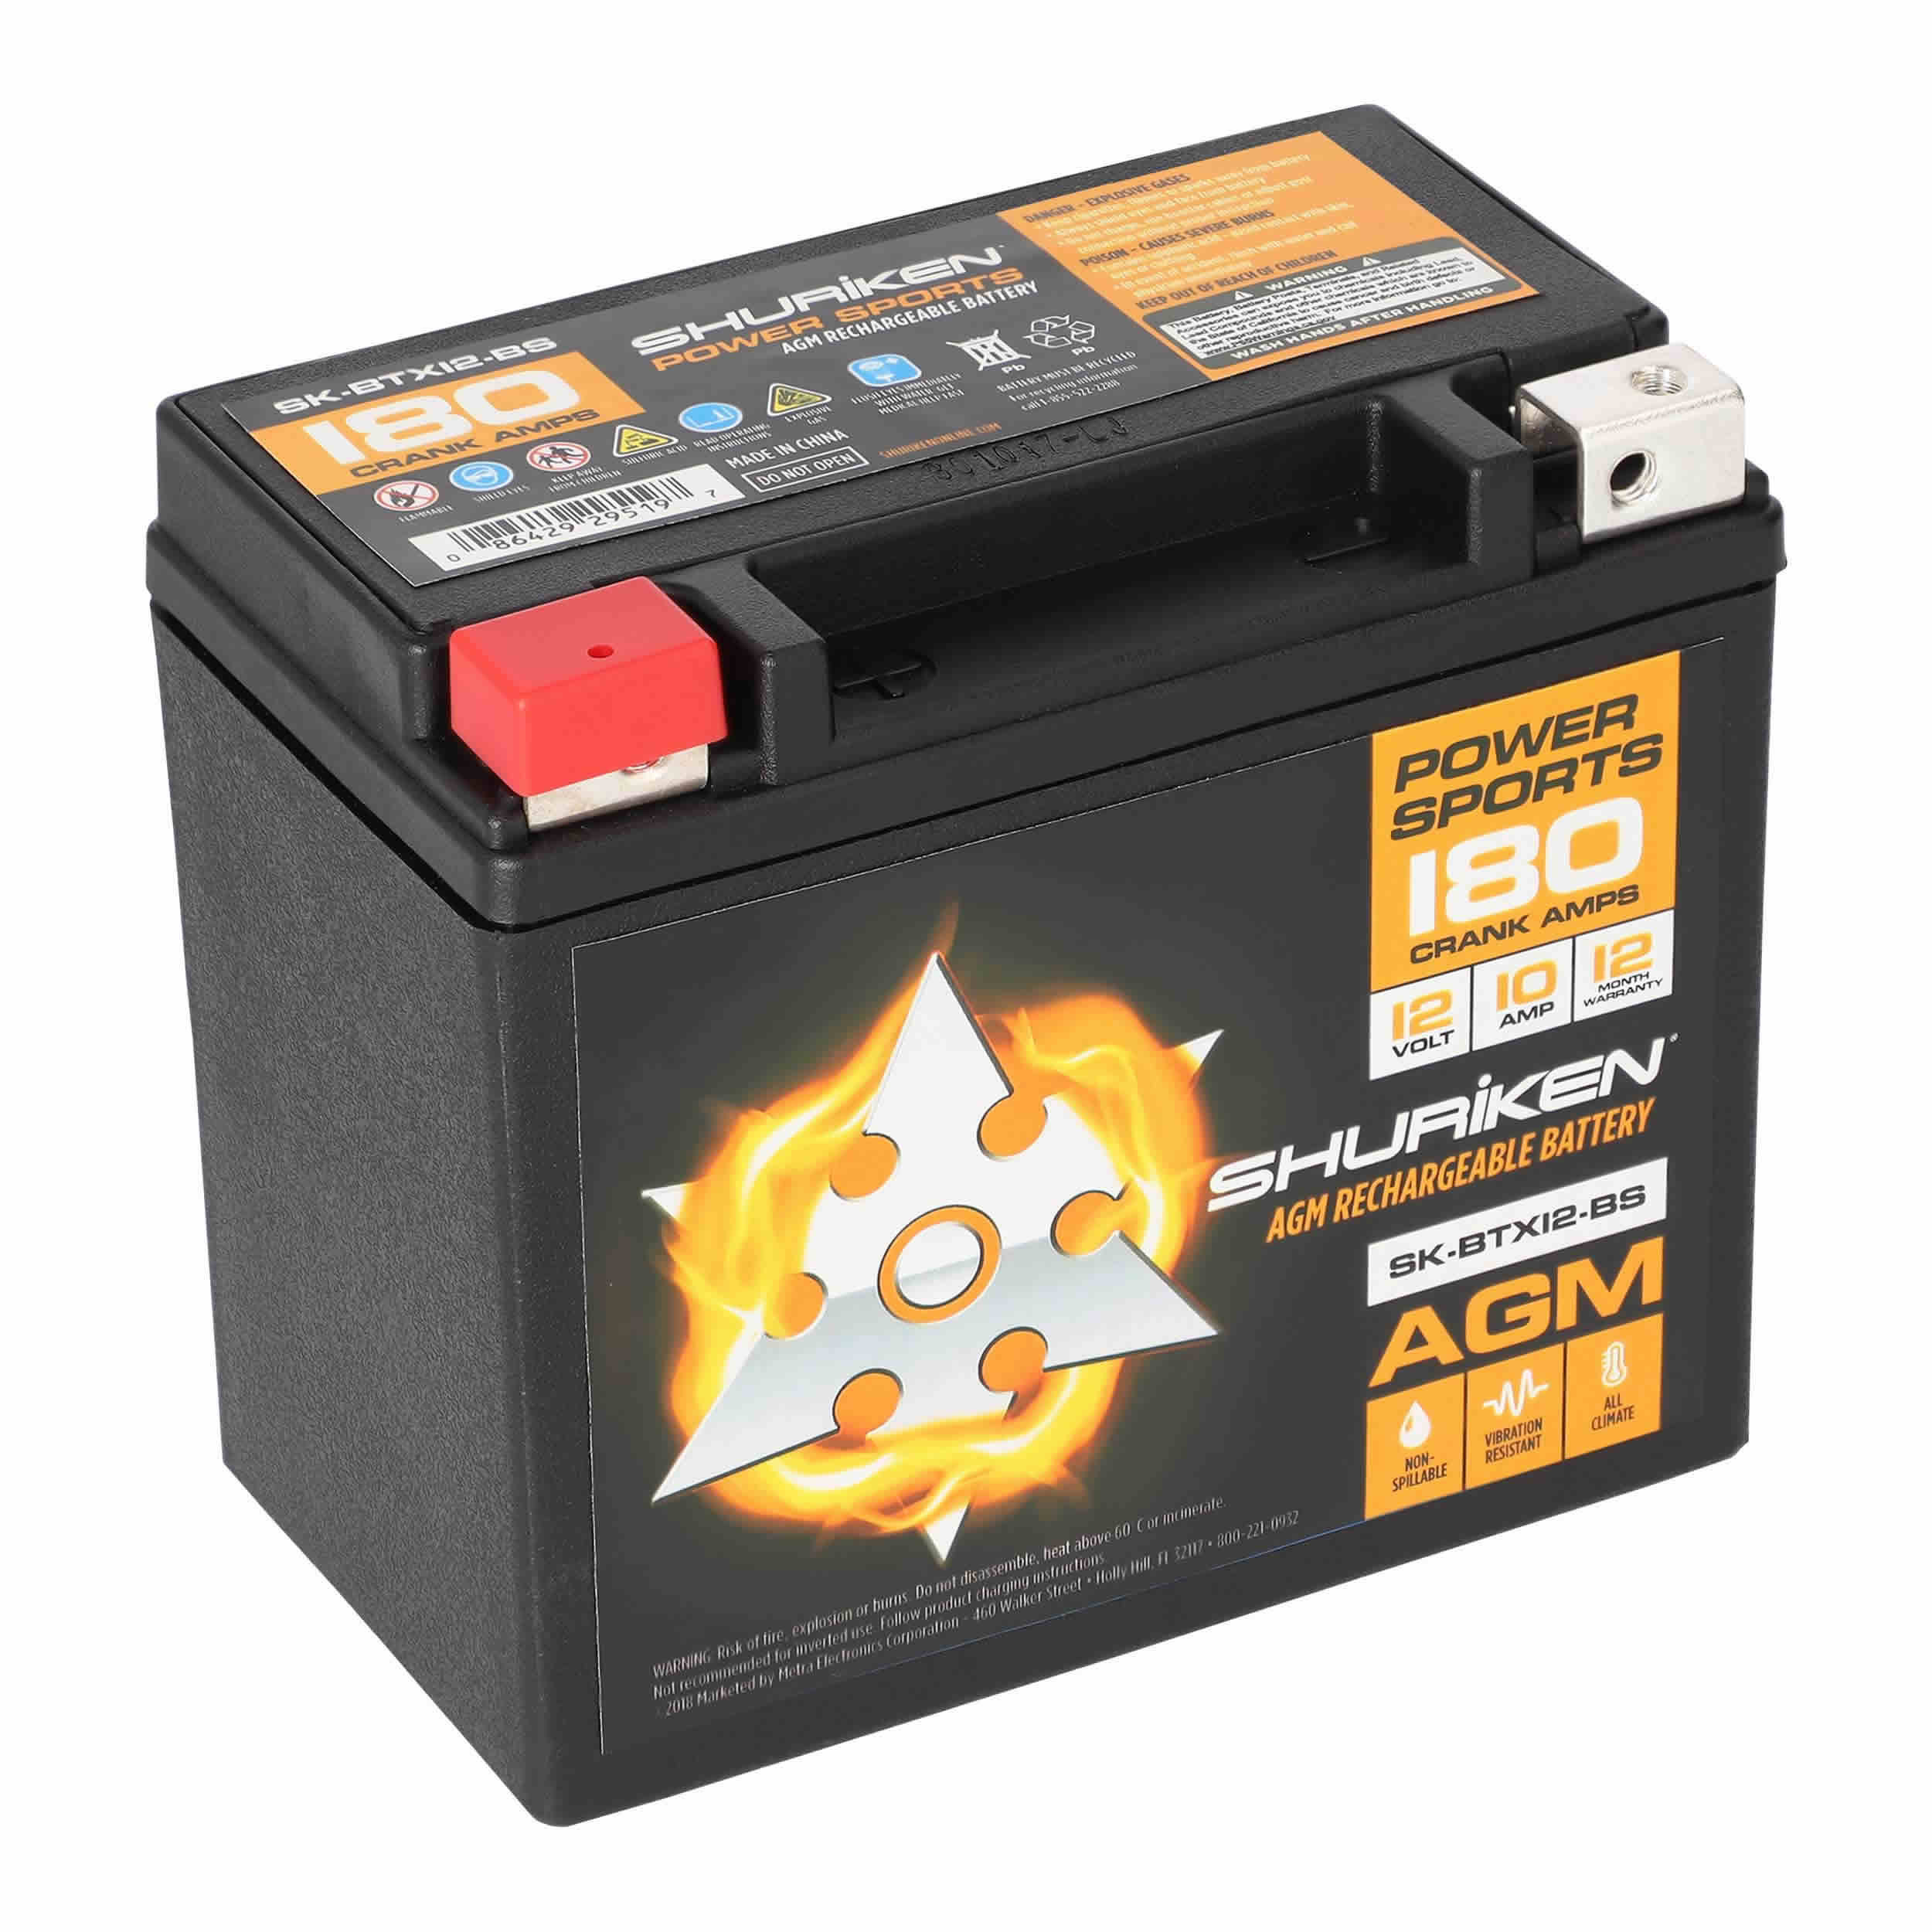 180 Crank AMPS / 10AMP Hours AGM Battery